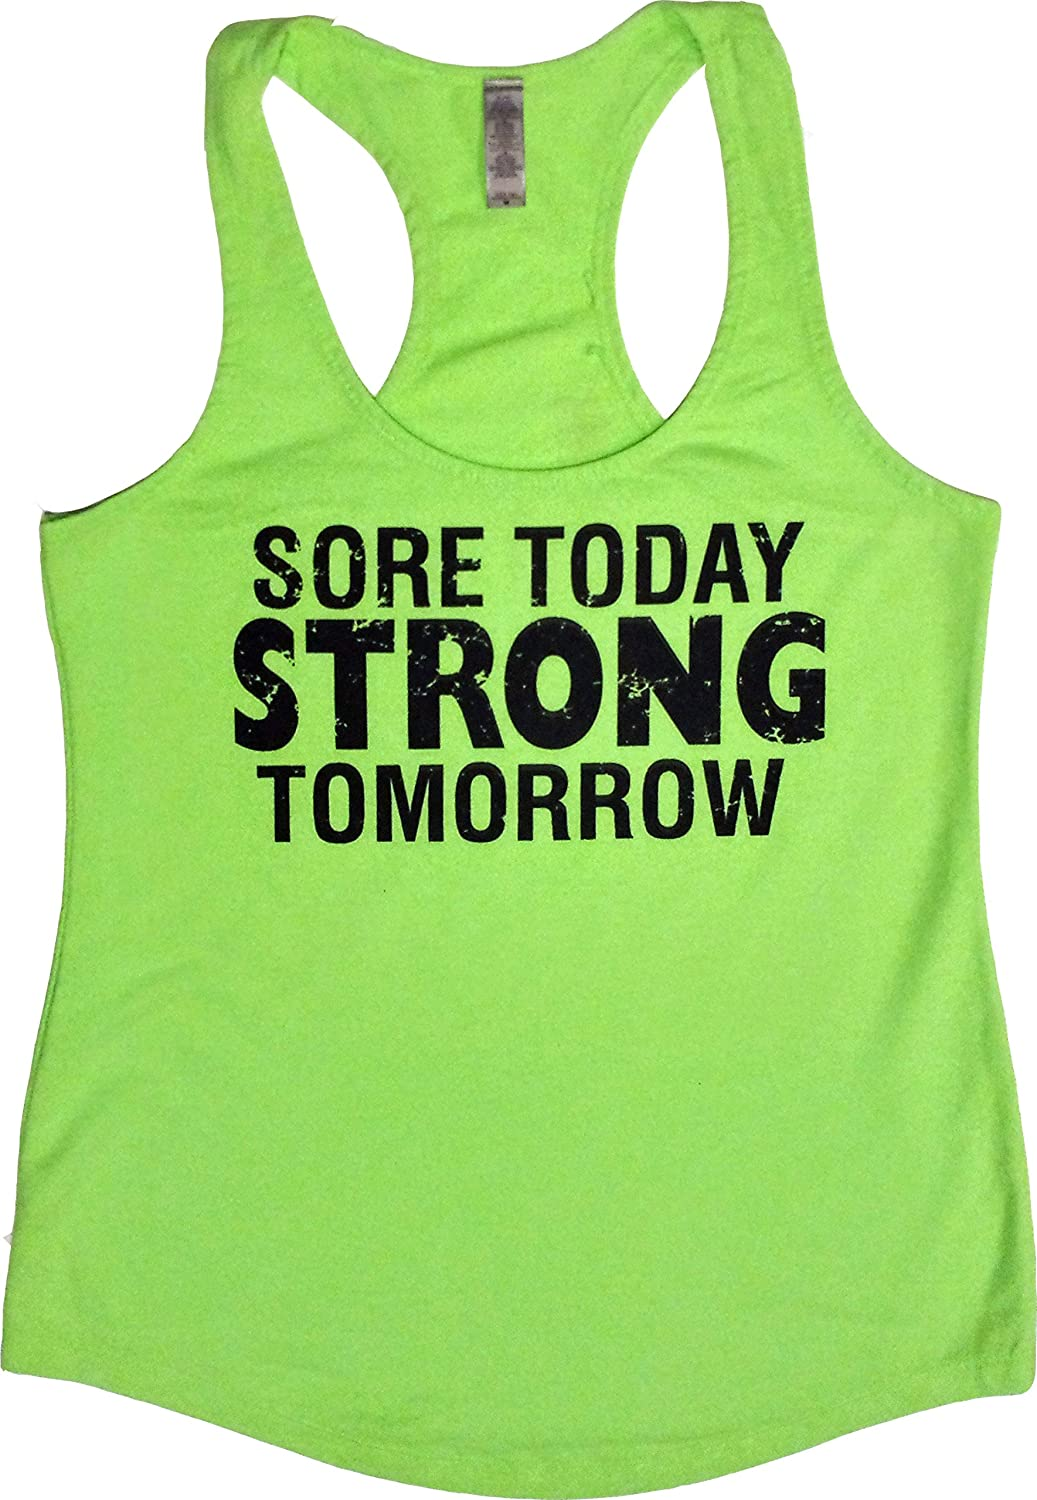 Orange Arrow Womens Workout Clothing - Sore Today Strong Tomorrow - Racerback Tank Top